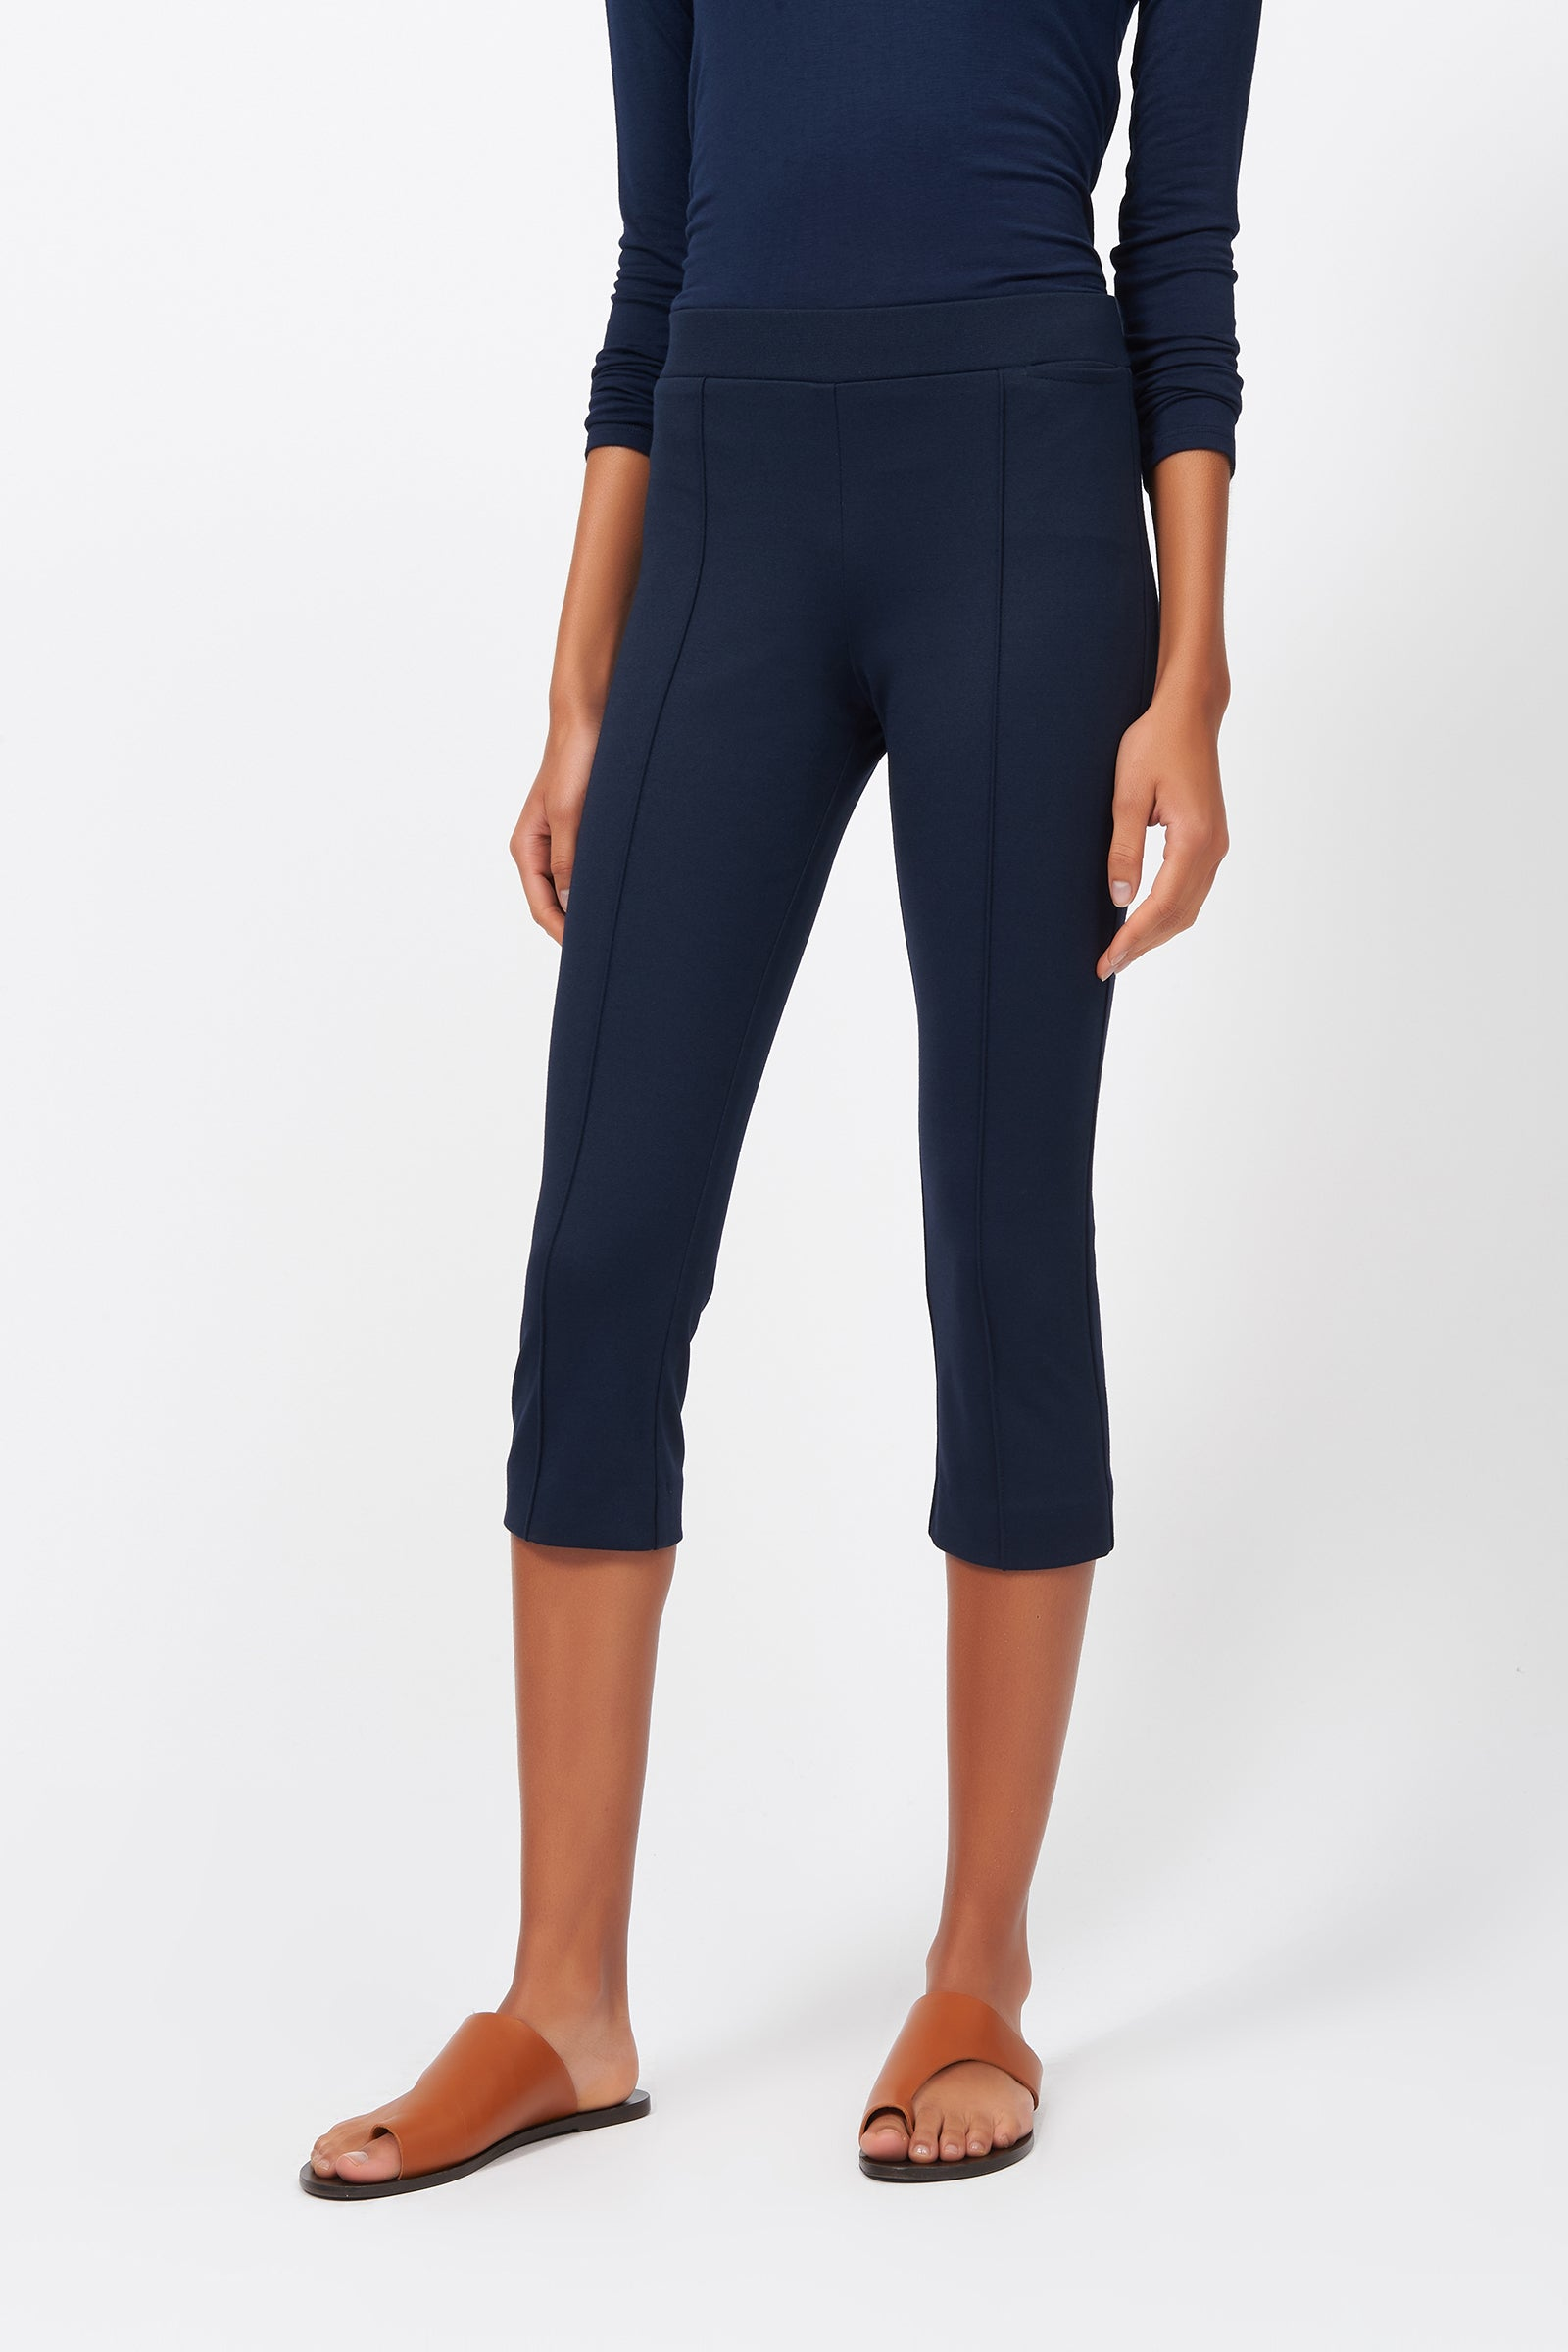 Kal Rieman Pintuck Ponte 3/4 Pant in Navy on Model Front View